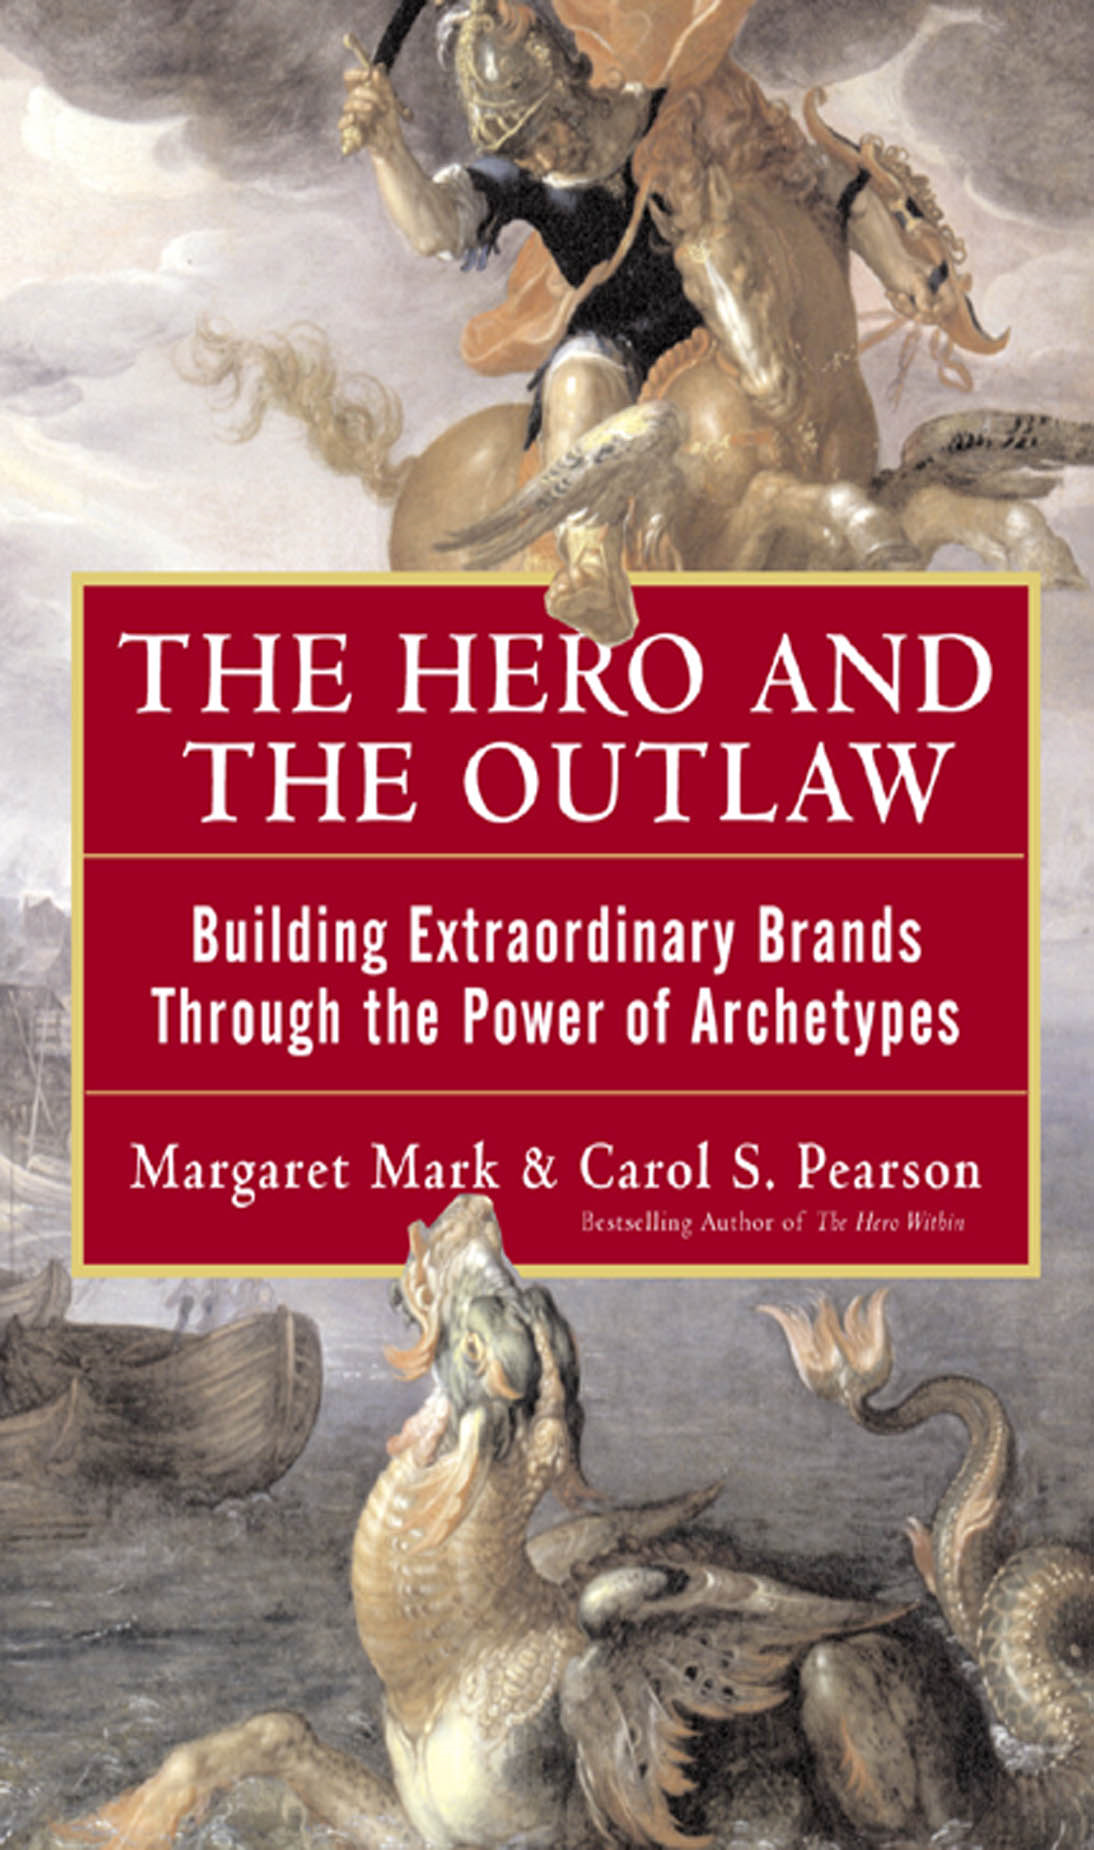 The Hero and the Outlaw: Building Extraordinary Brands Through the Power of Archetypes